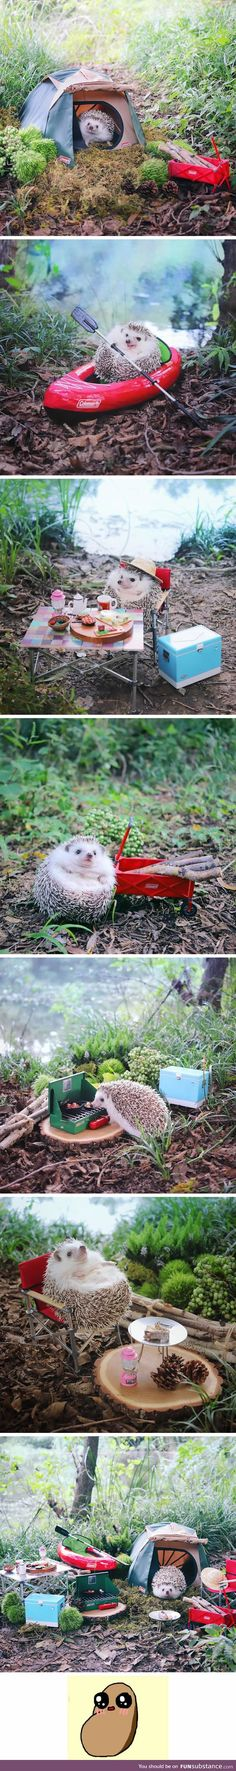 This camping hedgehog is the cutest thing you see today